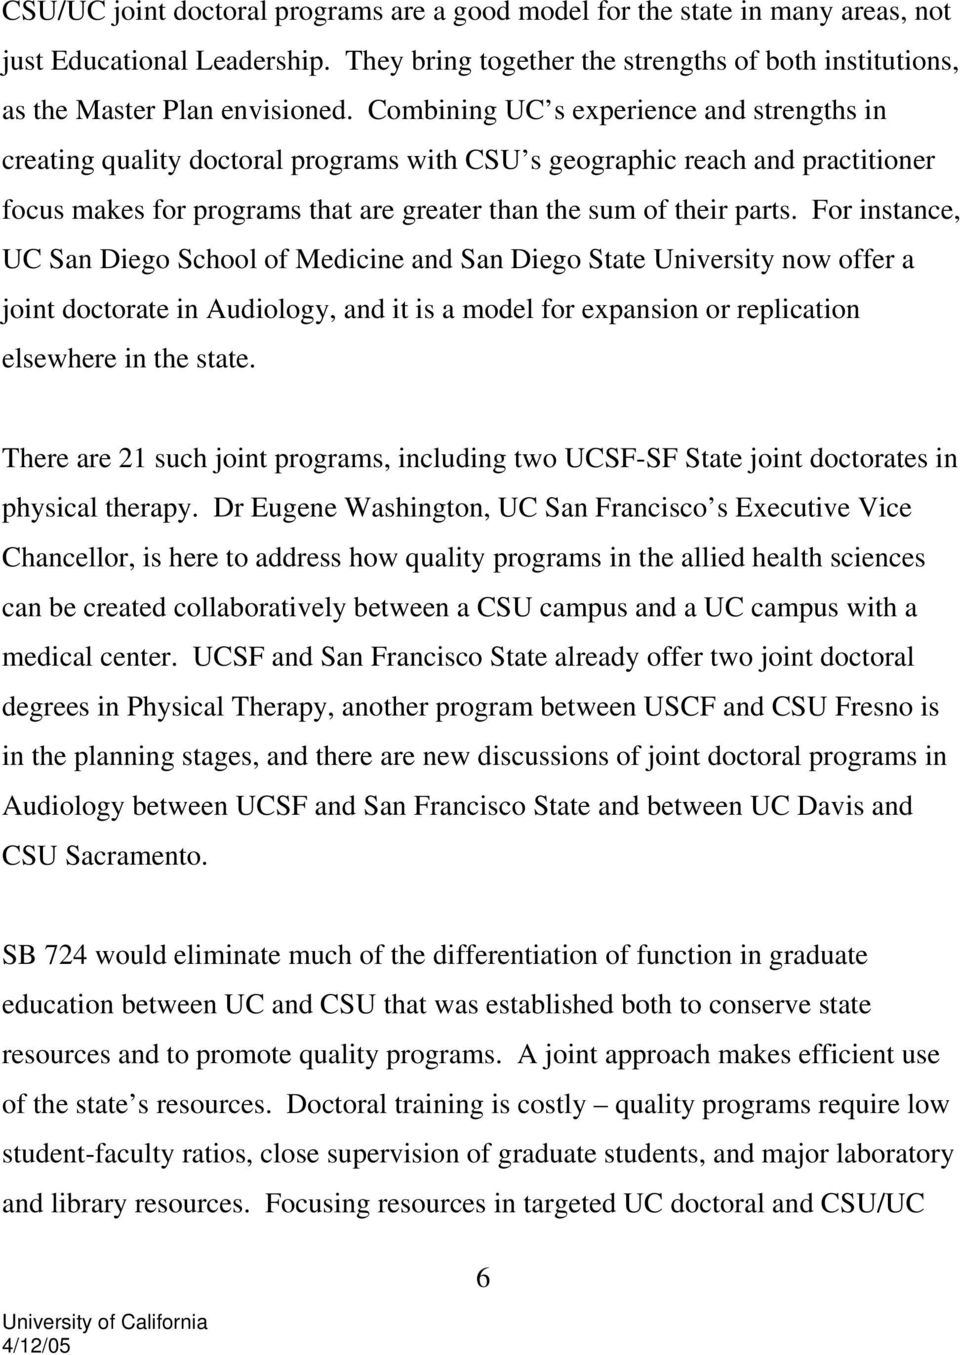 For instance, UC San Diego School of Medicine and San Diego State University now offer a joint doctorate in Audiology, and it is a model for expansion or replication elsewhere in the state.